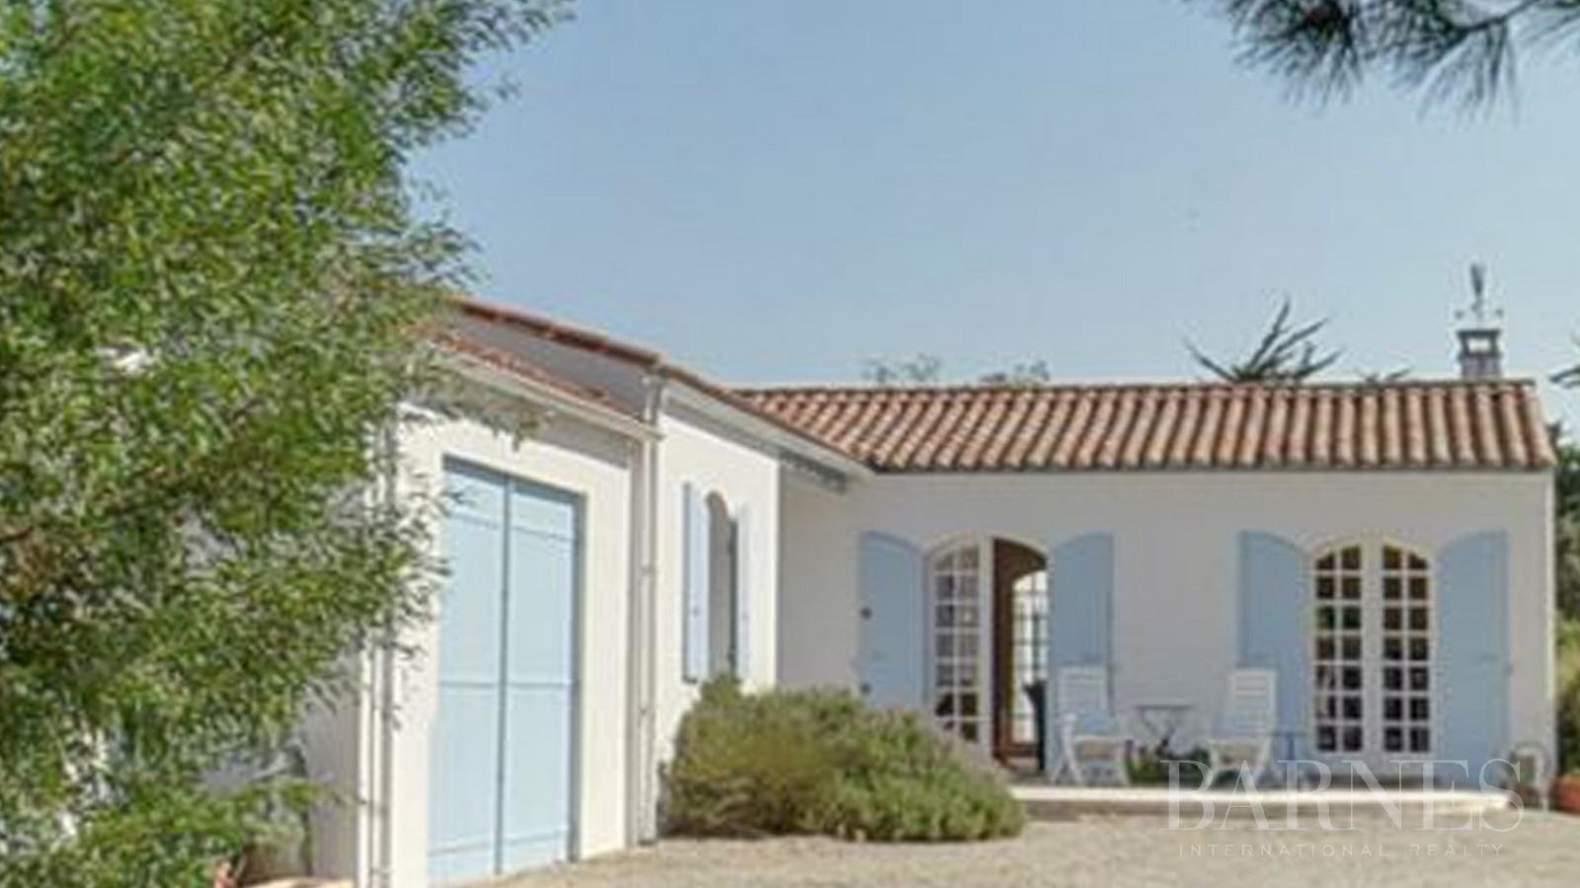 Ile de Ré - Les Portes - Close to La Patache - Swimming pool - 6 bedrooms picture 3